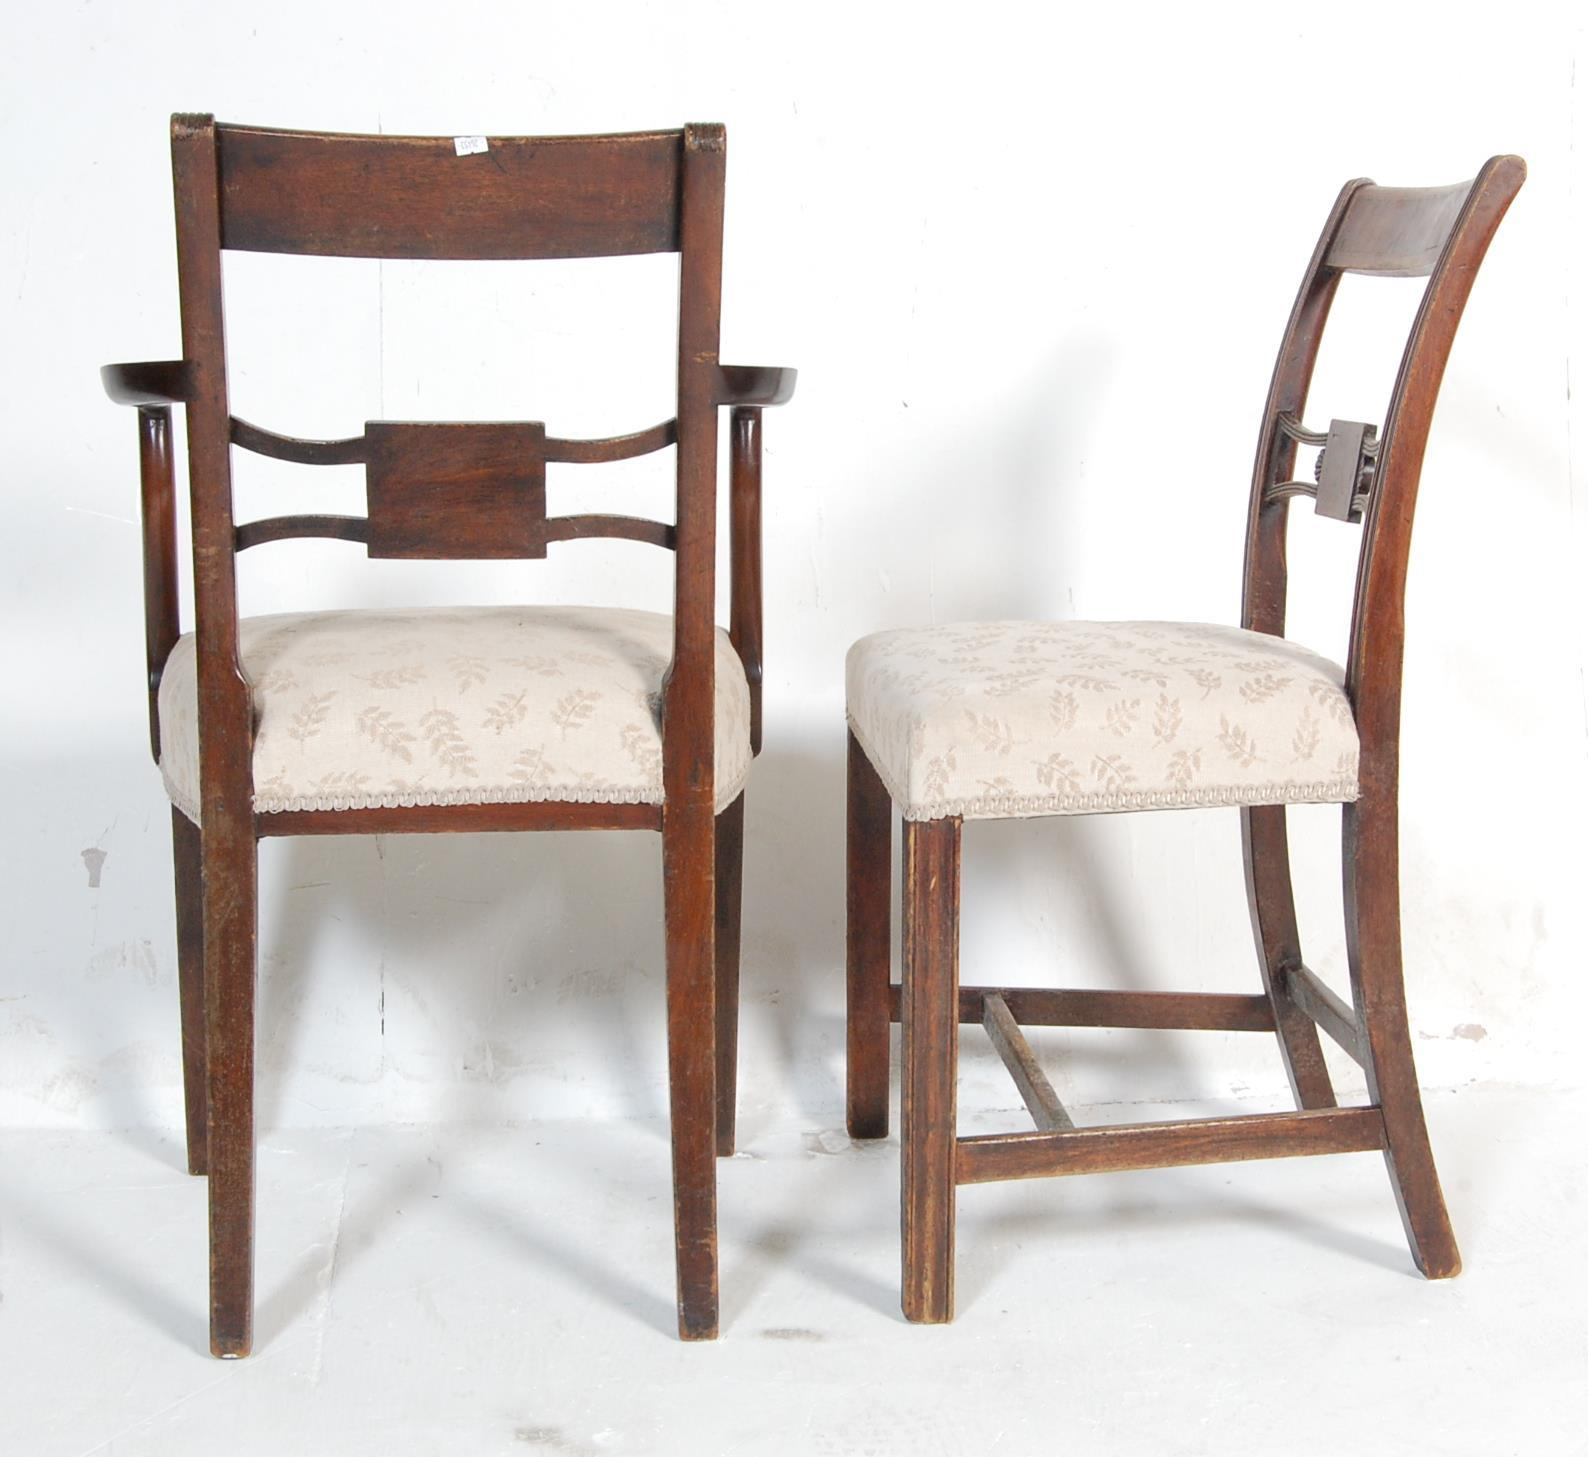 AN ANTIQUE EDWARDIAN REGENCY REVIVAL HARLEQUIN SET OF SIX CHAIRS - Image 7 of 7